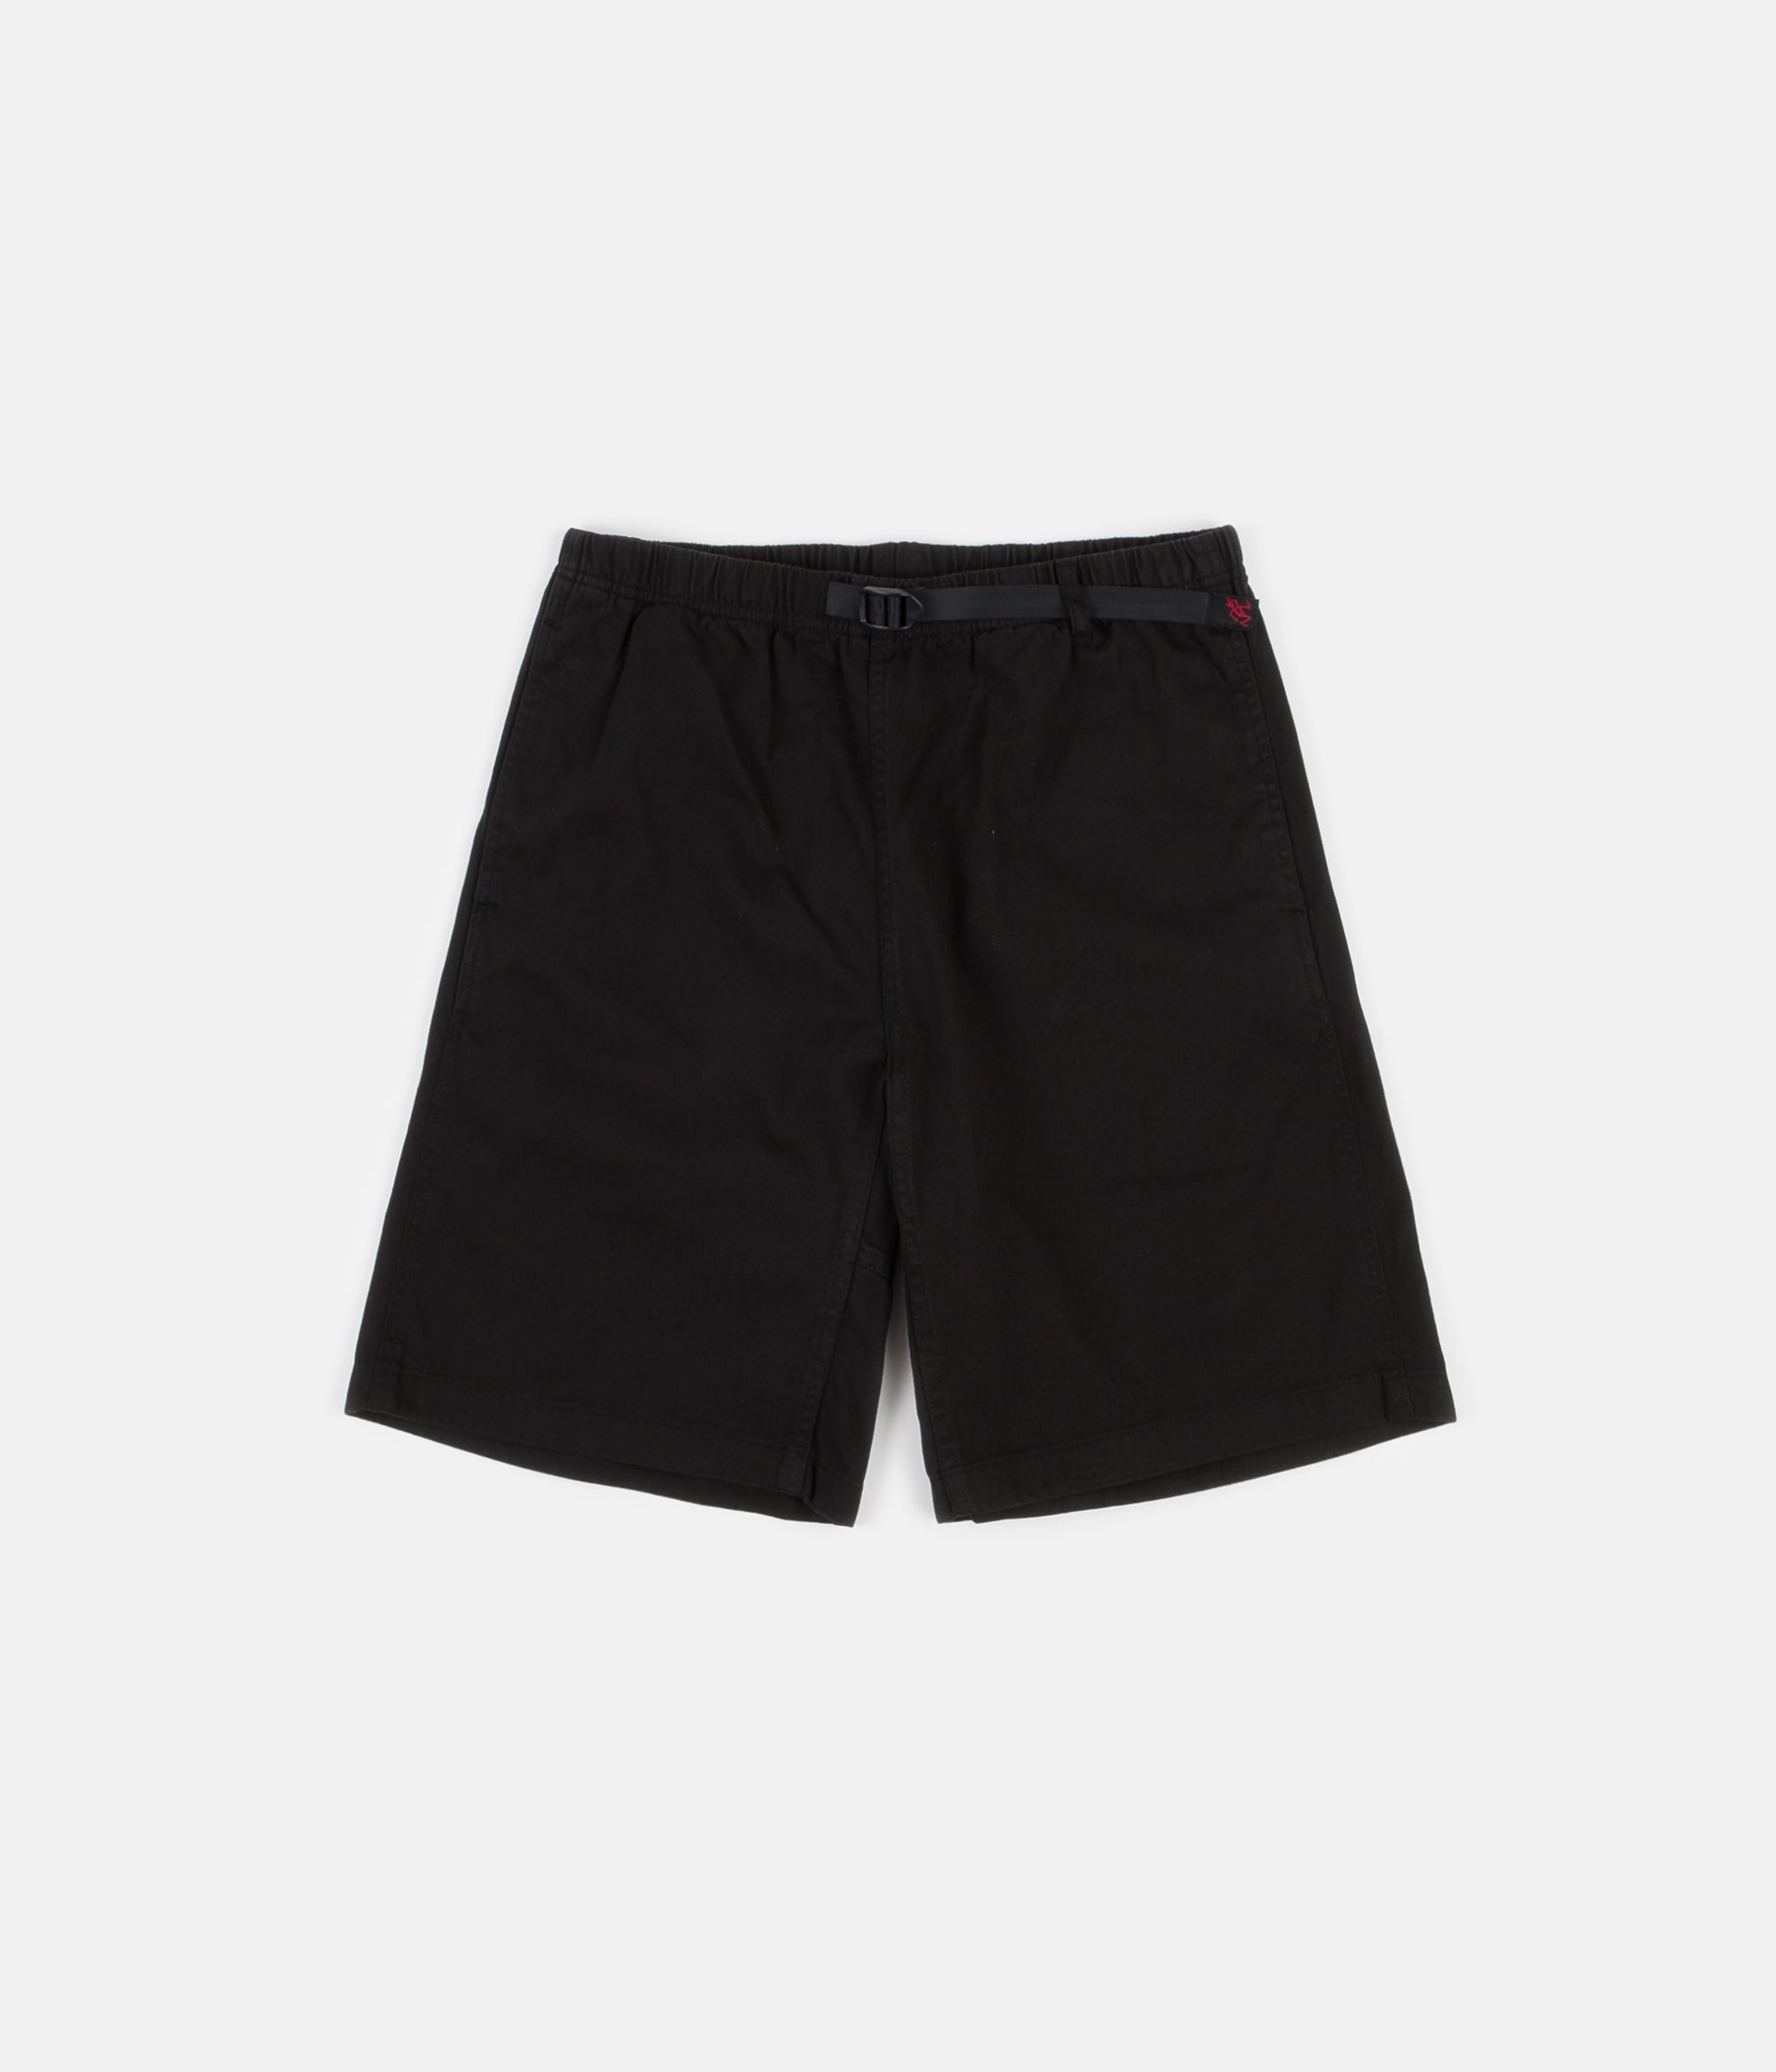 Gramicci G-Shorts - Black